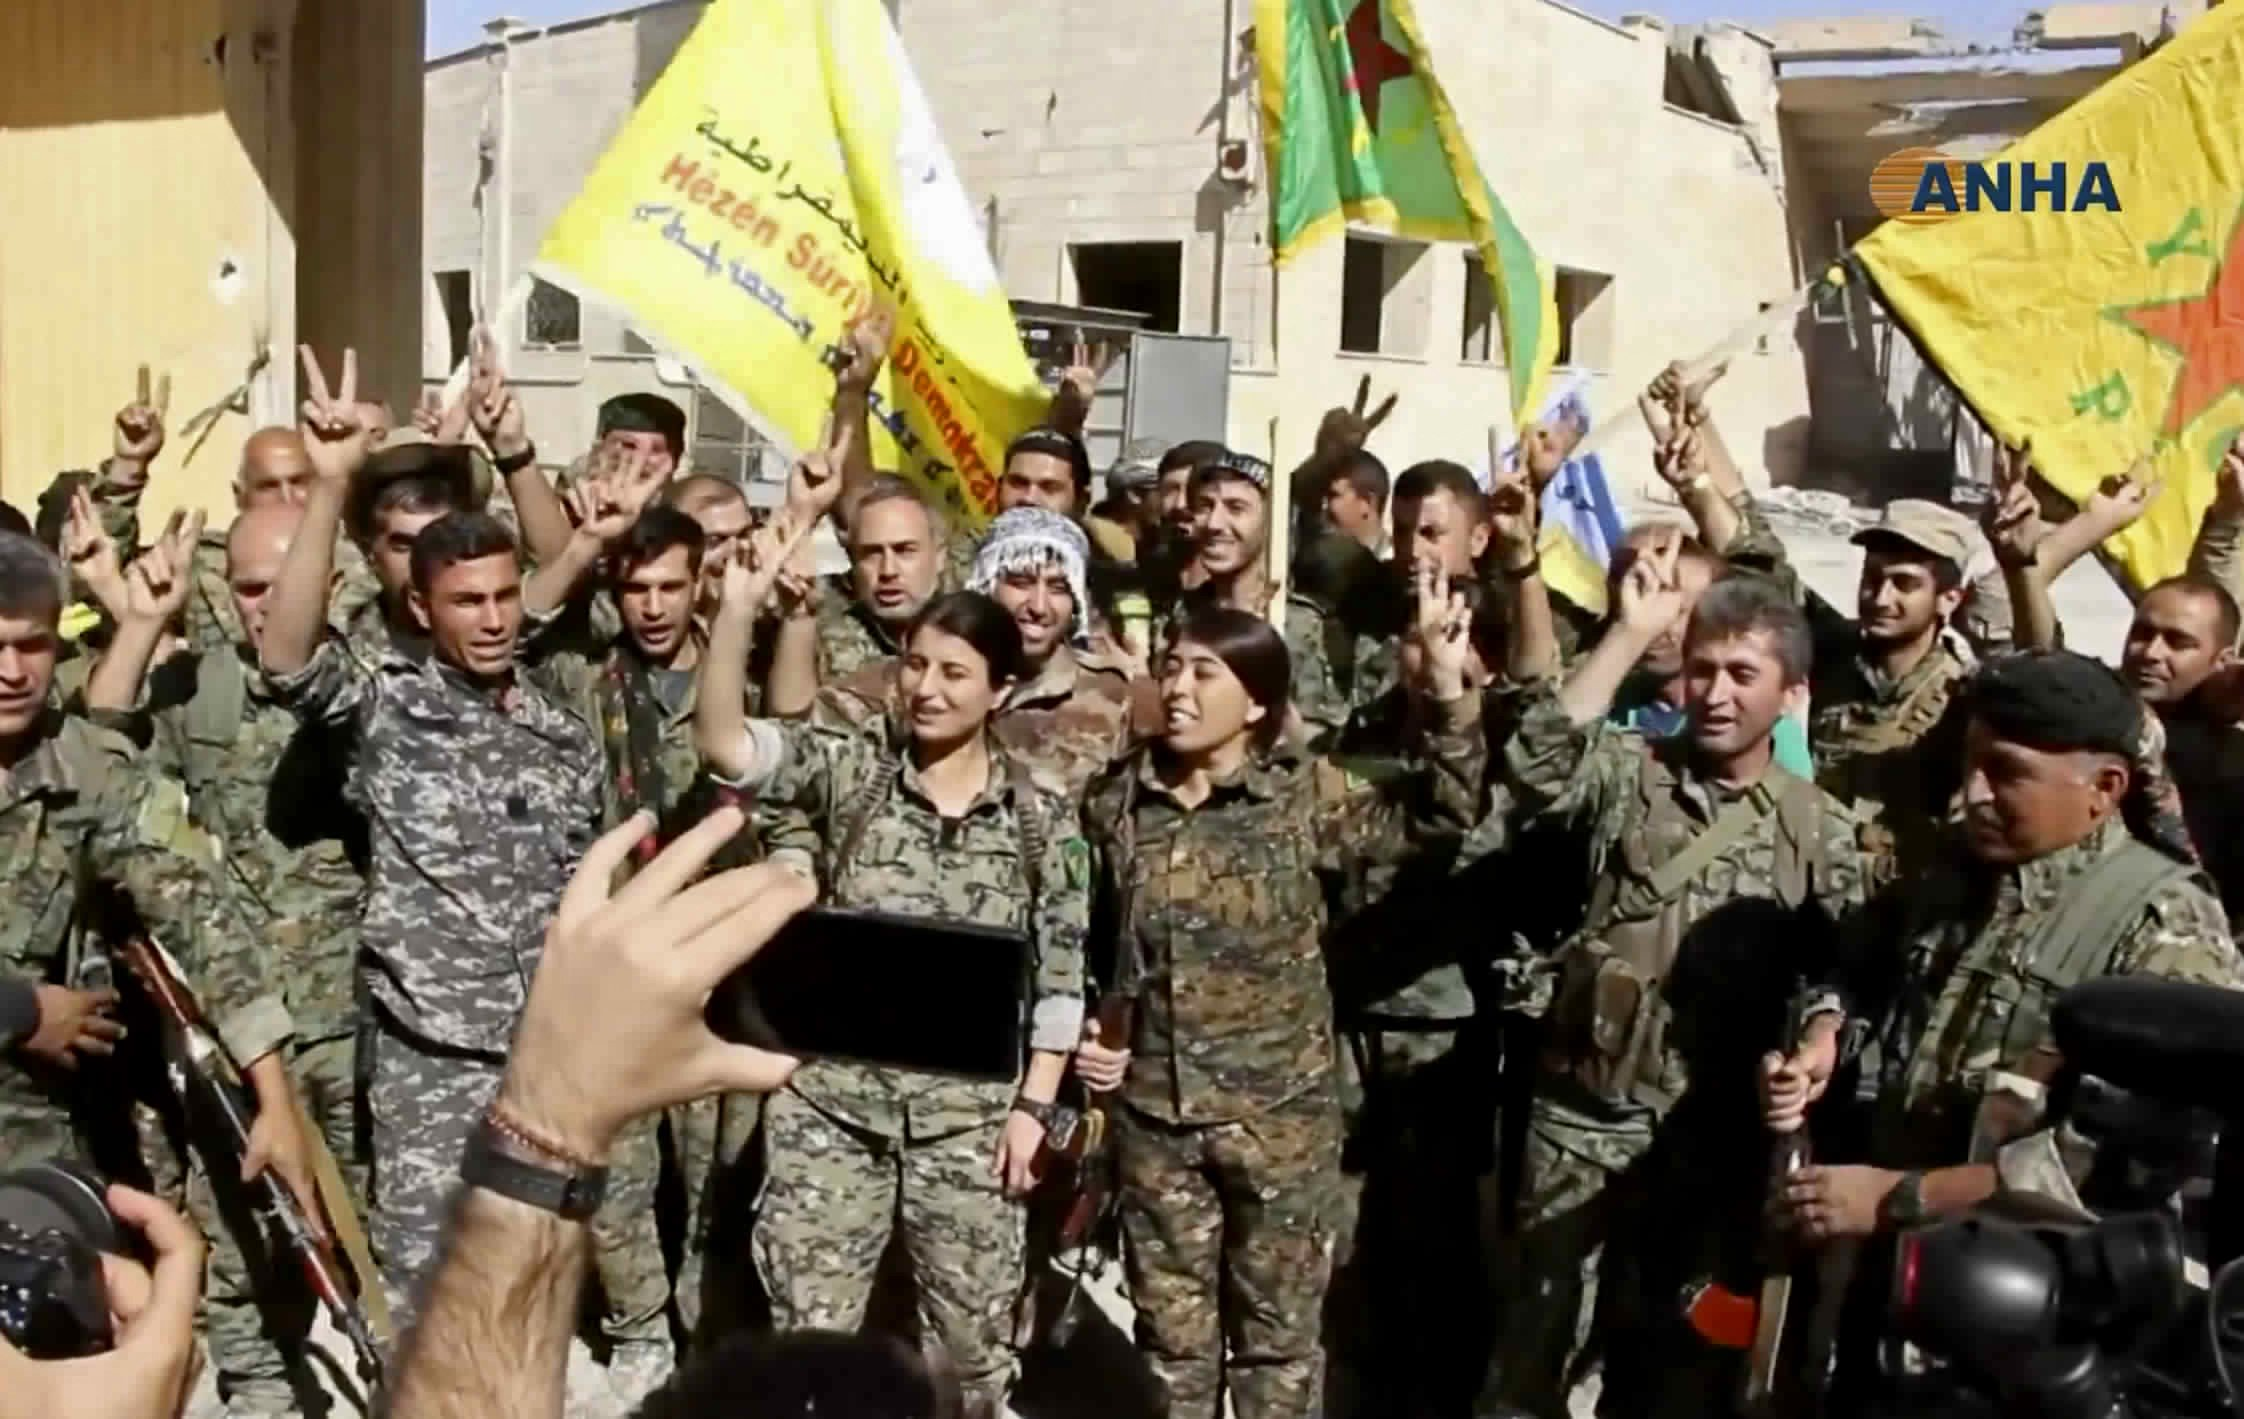 After IS collapse in Raqqa, US faces other extremism threats